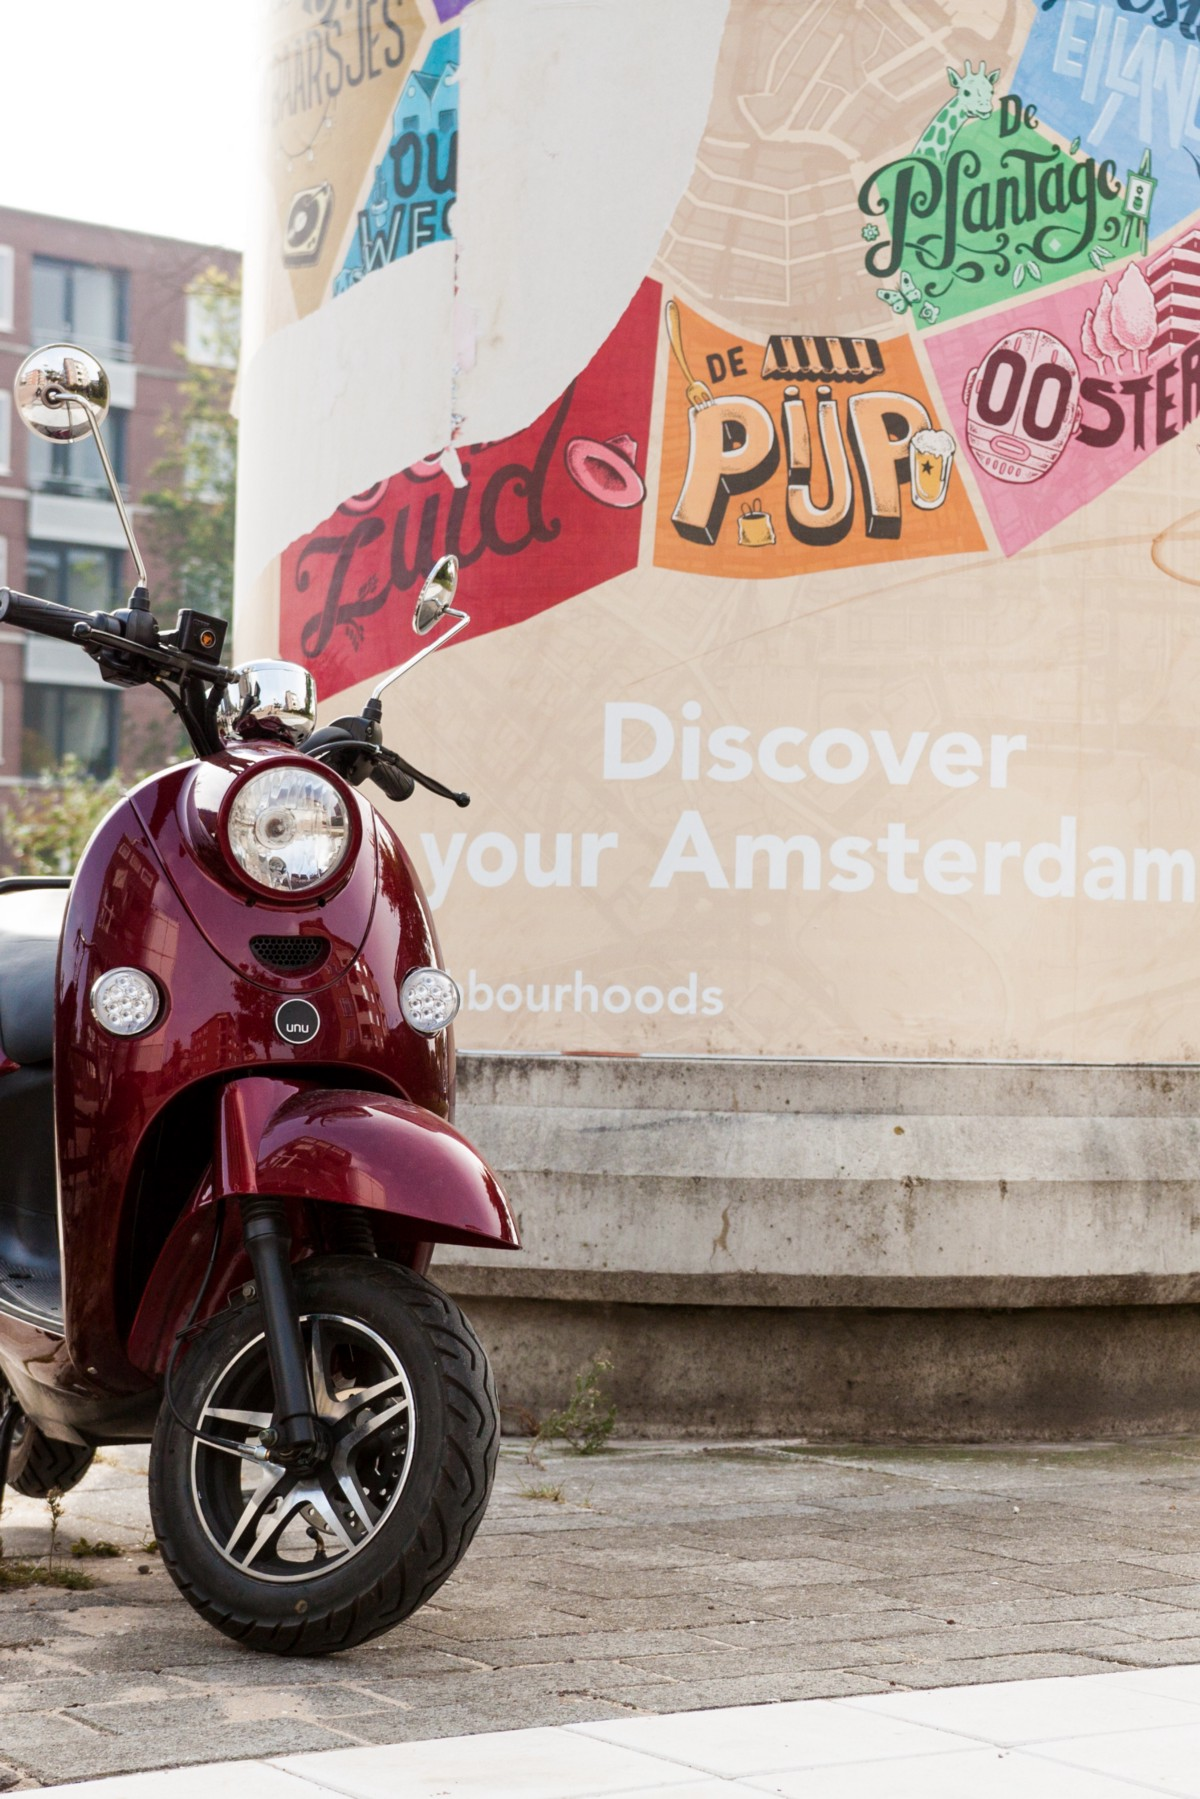 Discover your Amsterdam with unu electric scooter